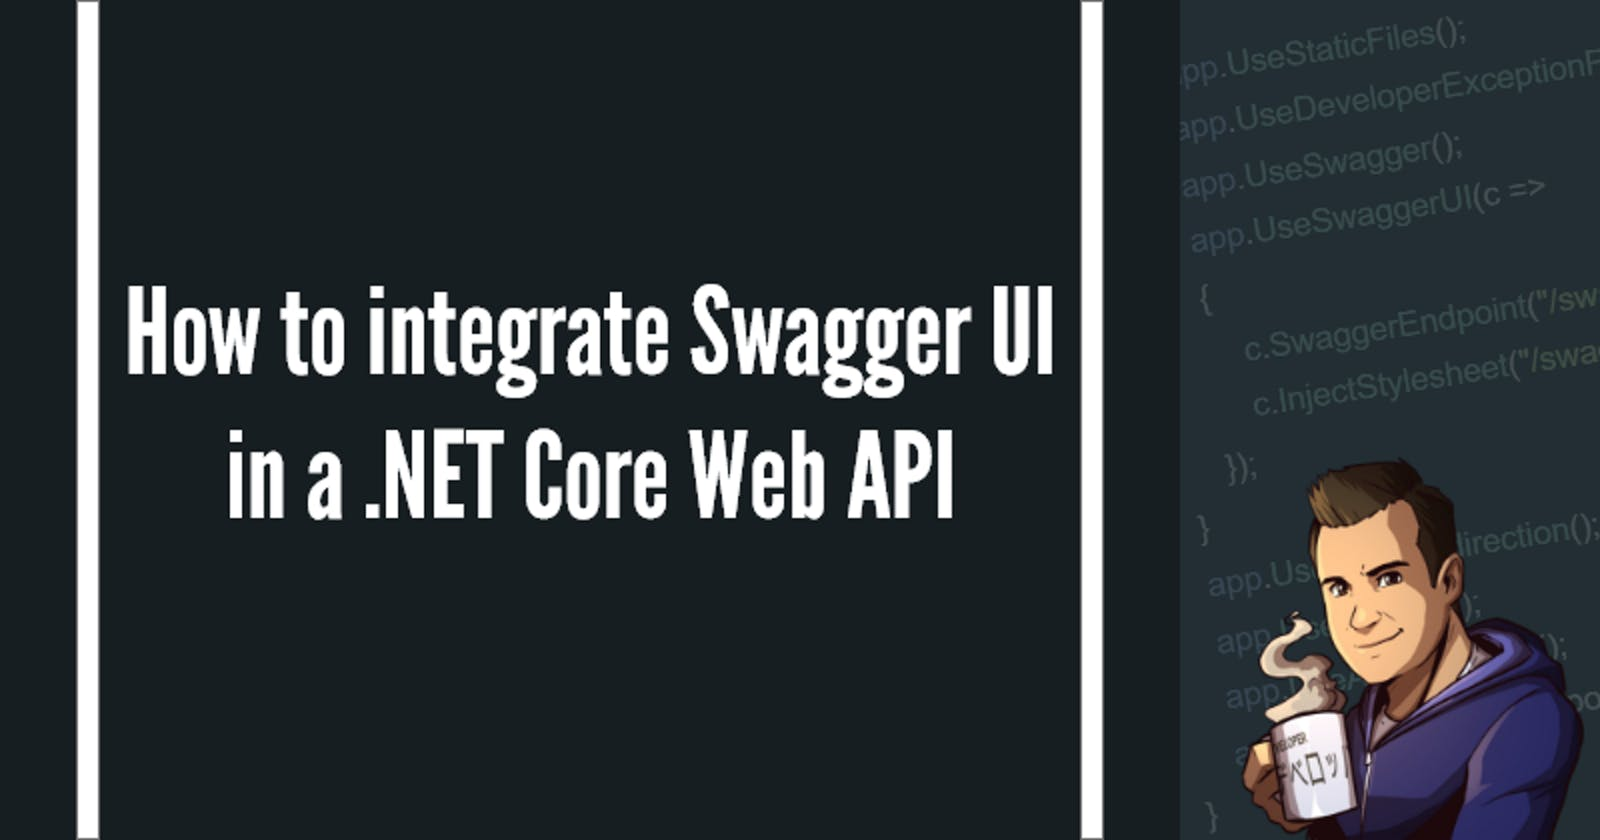 How to integrate Swagger UI in a .NET Core Web API application | Amoenus Dev